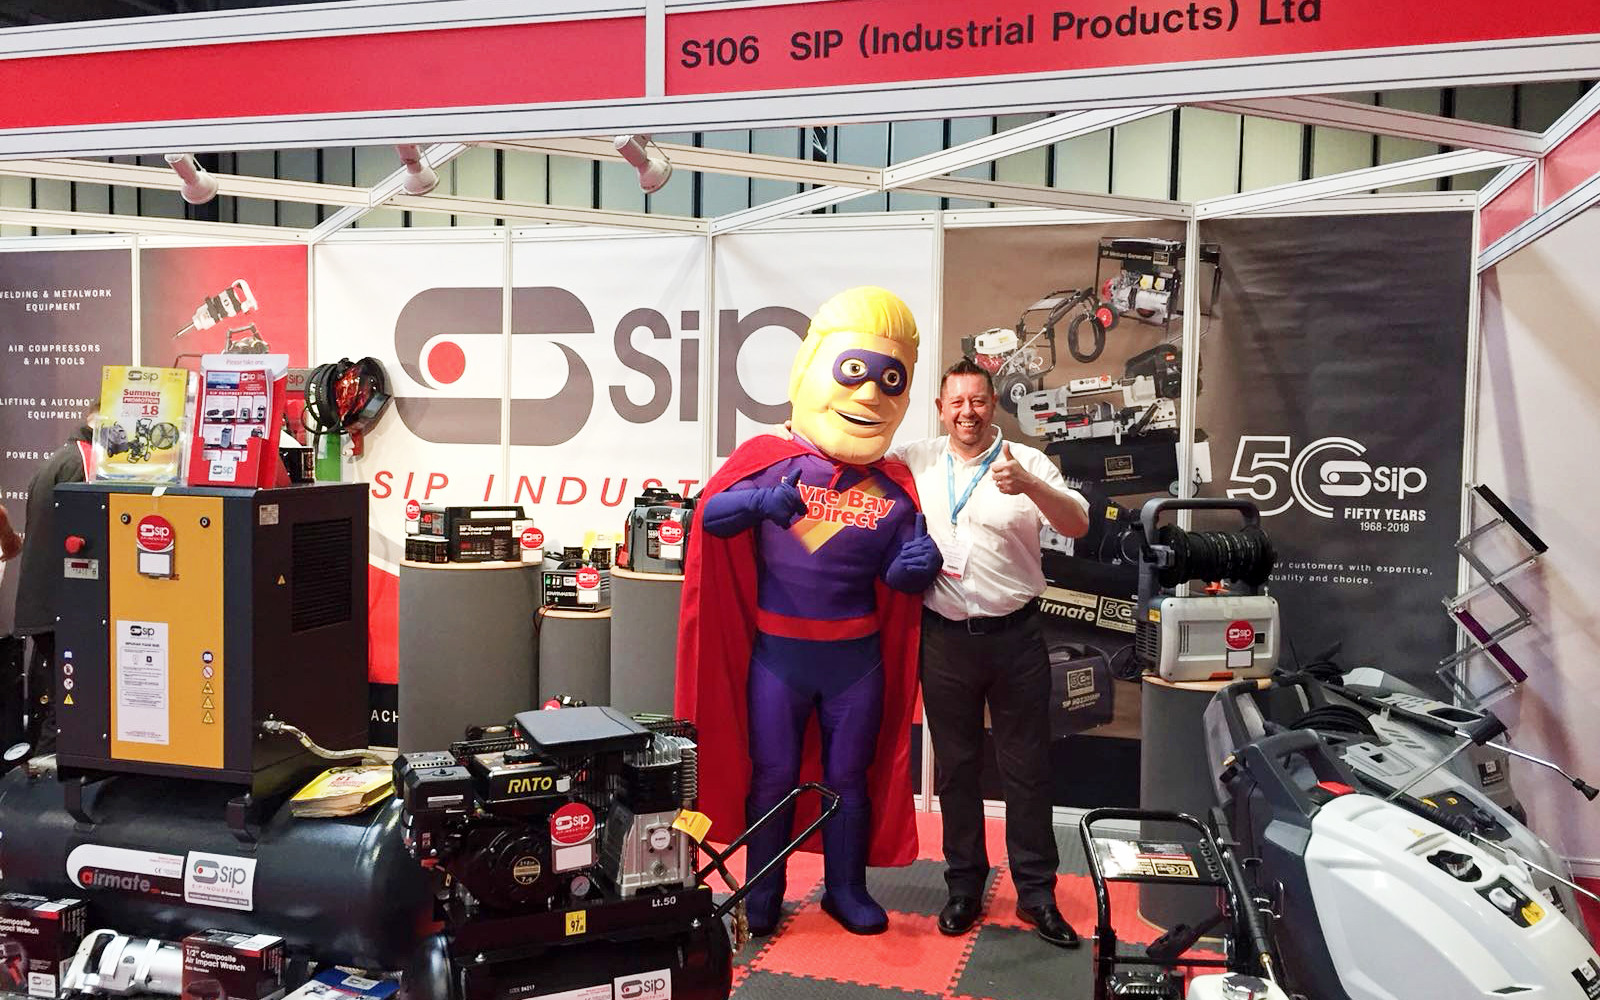 Tyre Bay Dave with Automechanika Exhibitor 9